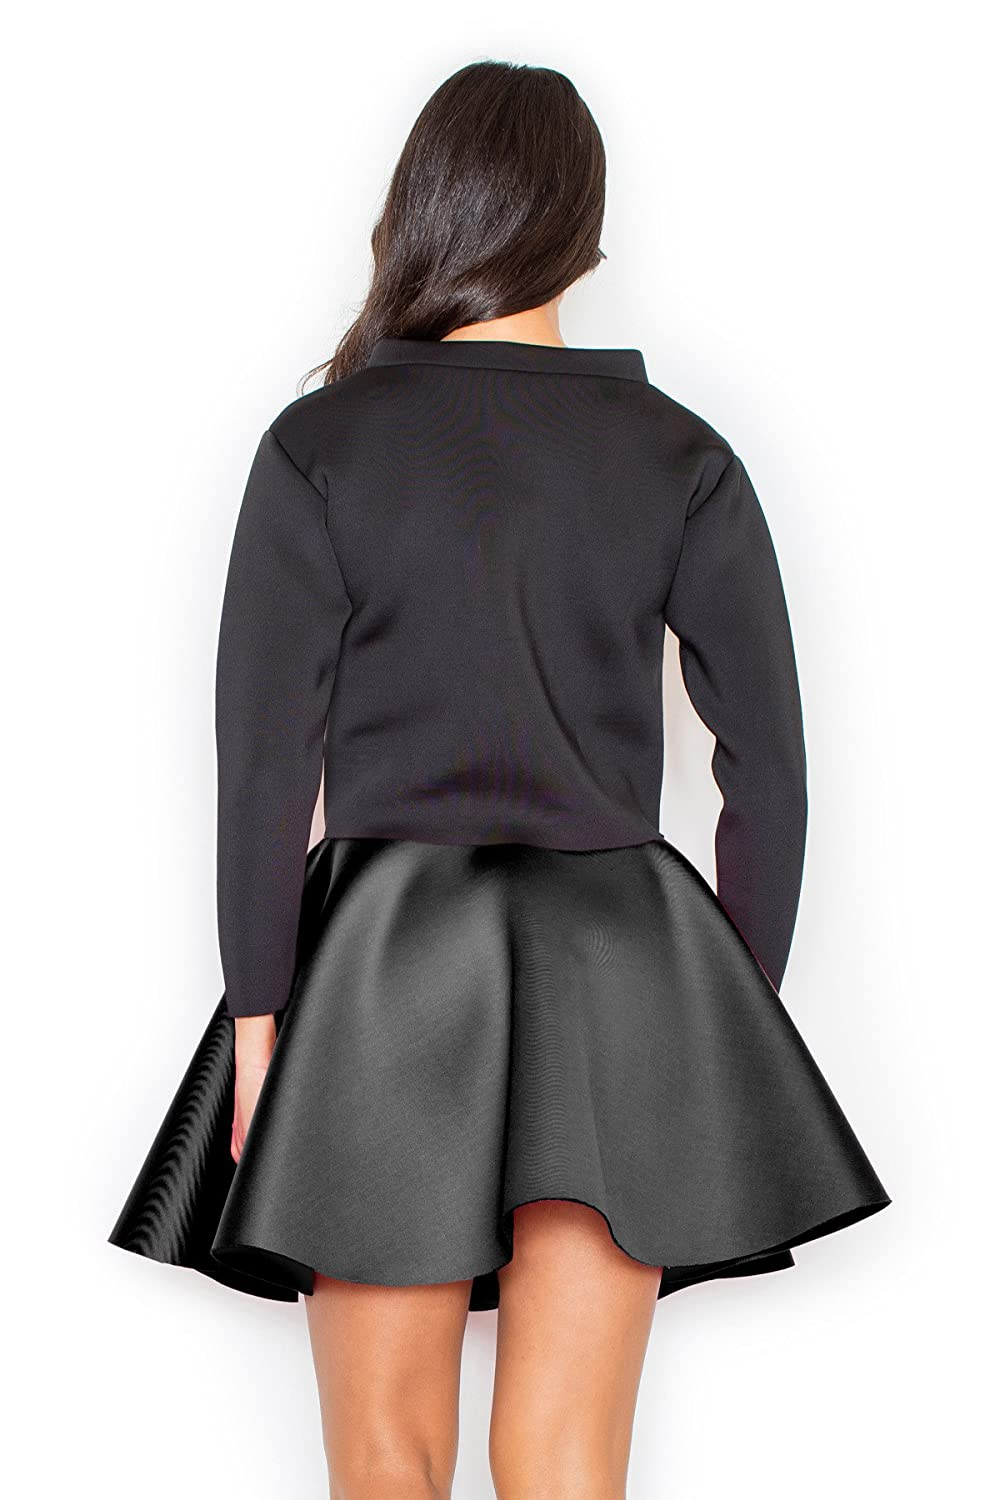 Scuba-knit A-shaped skirt by Figl